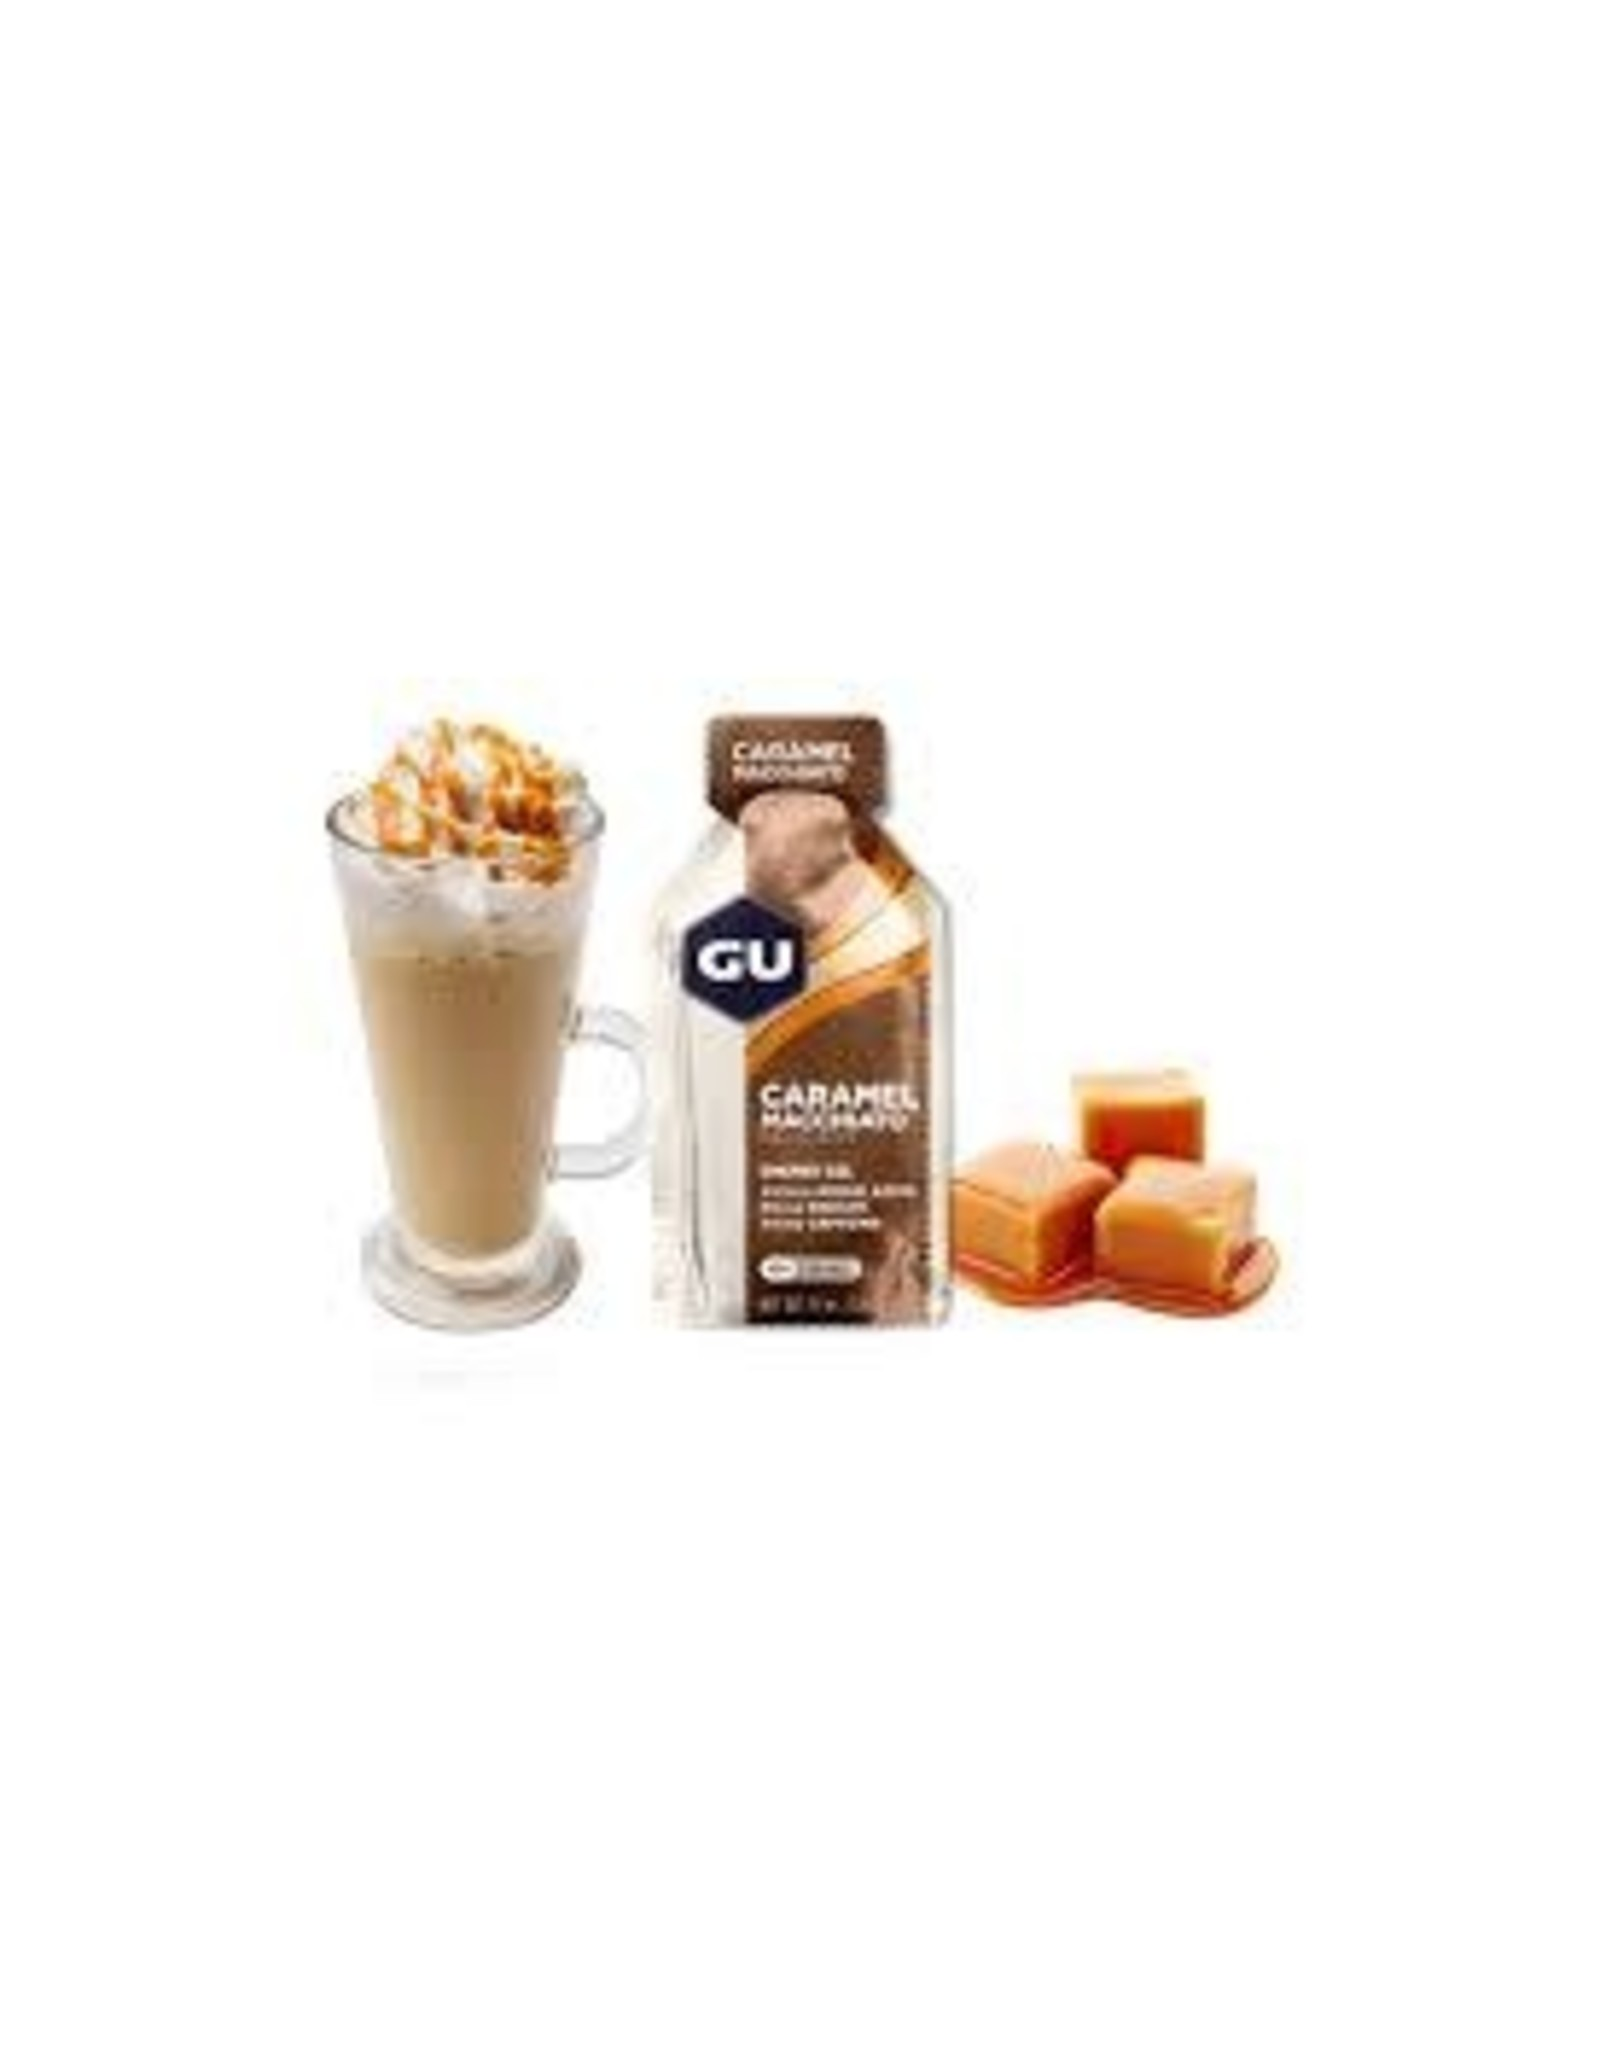 GU Energy Labs GU Caramel Macchiato Gel Box of 24 single